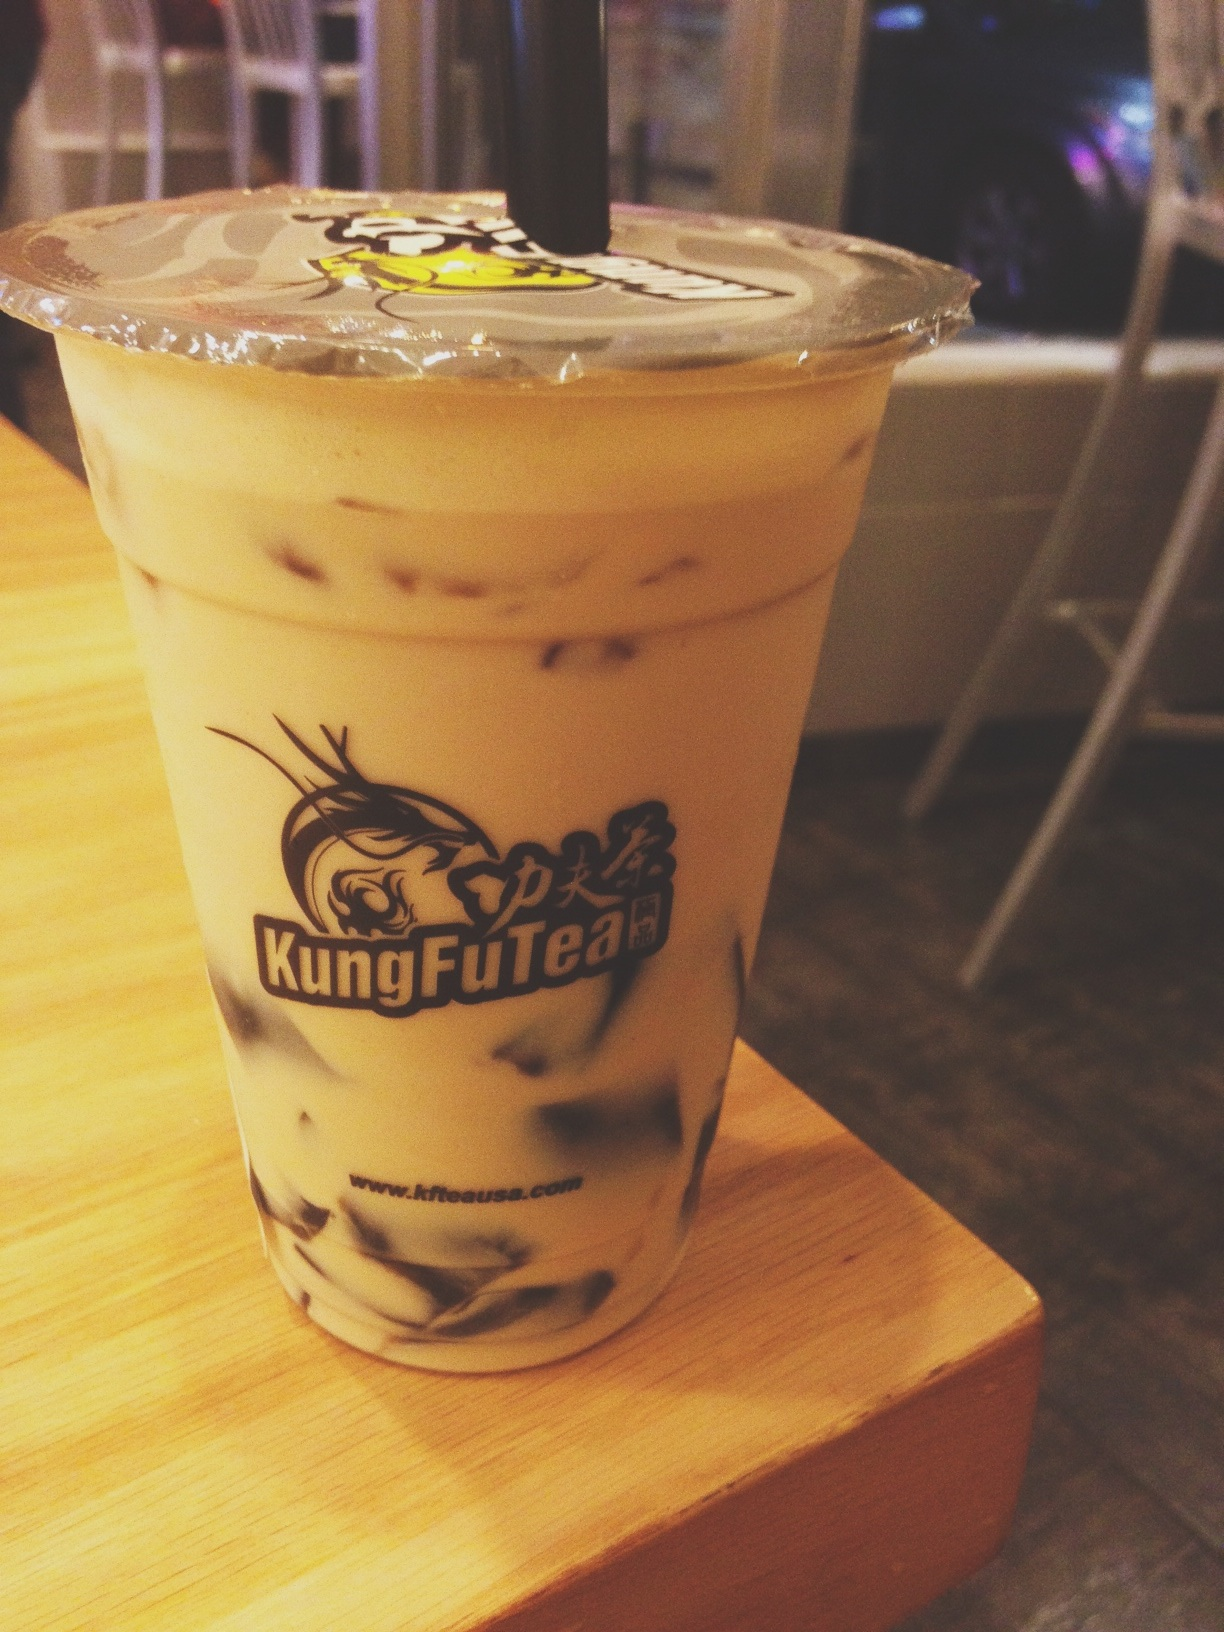 Was introduced to herbal jelly milk tea last weekend in Boston